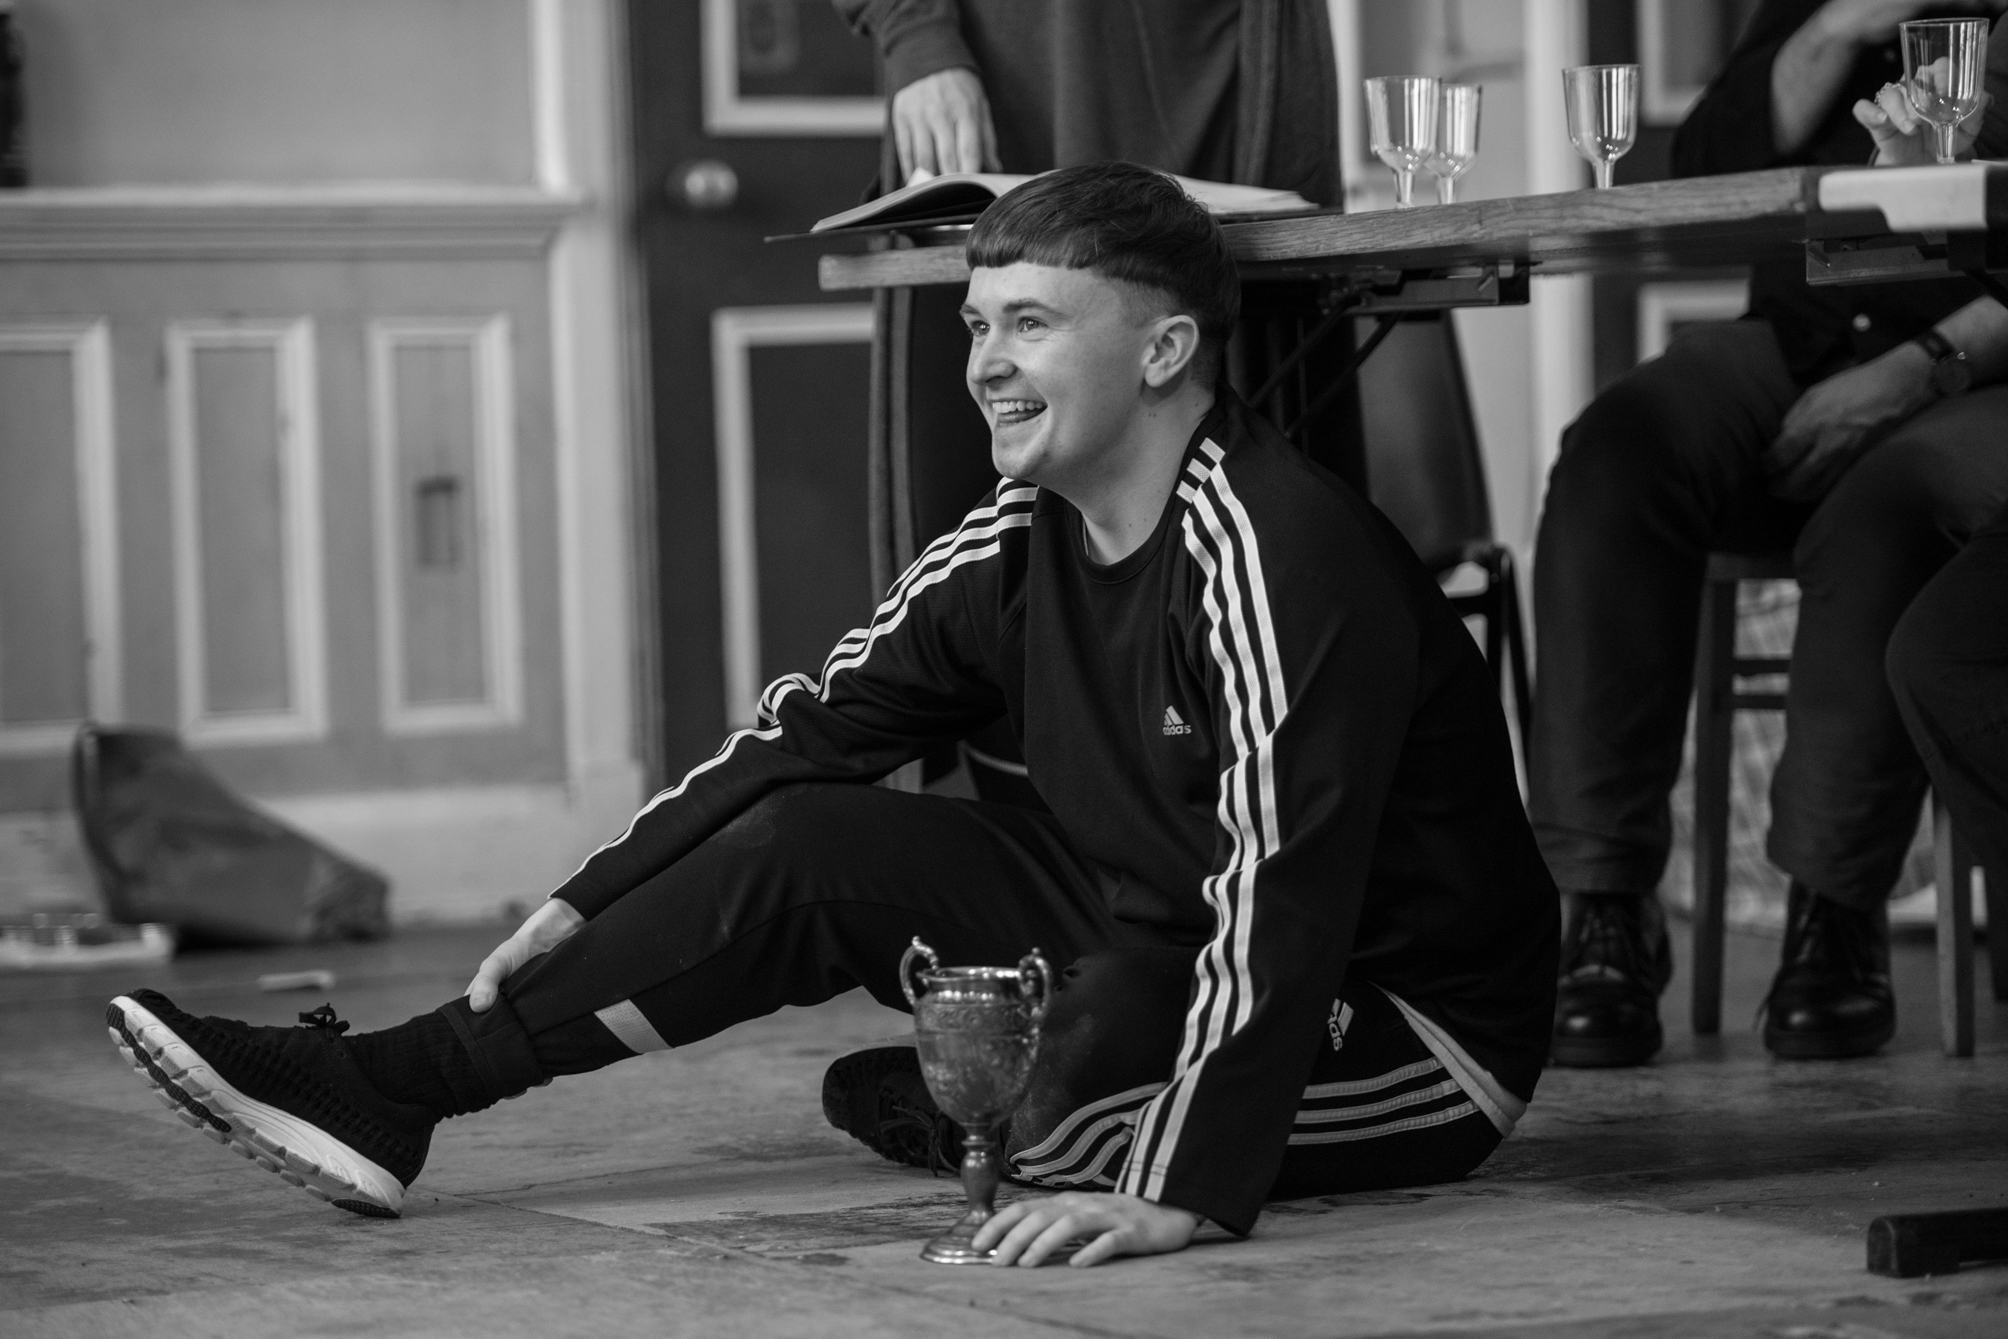 grant-mcintyre-in-addams-family-rehearsals_credit-craig-sugden-3